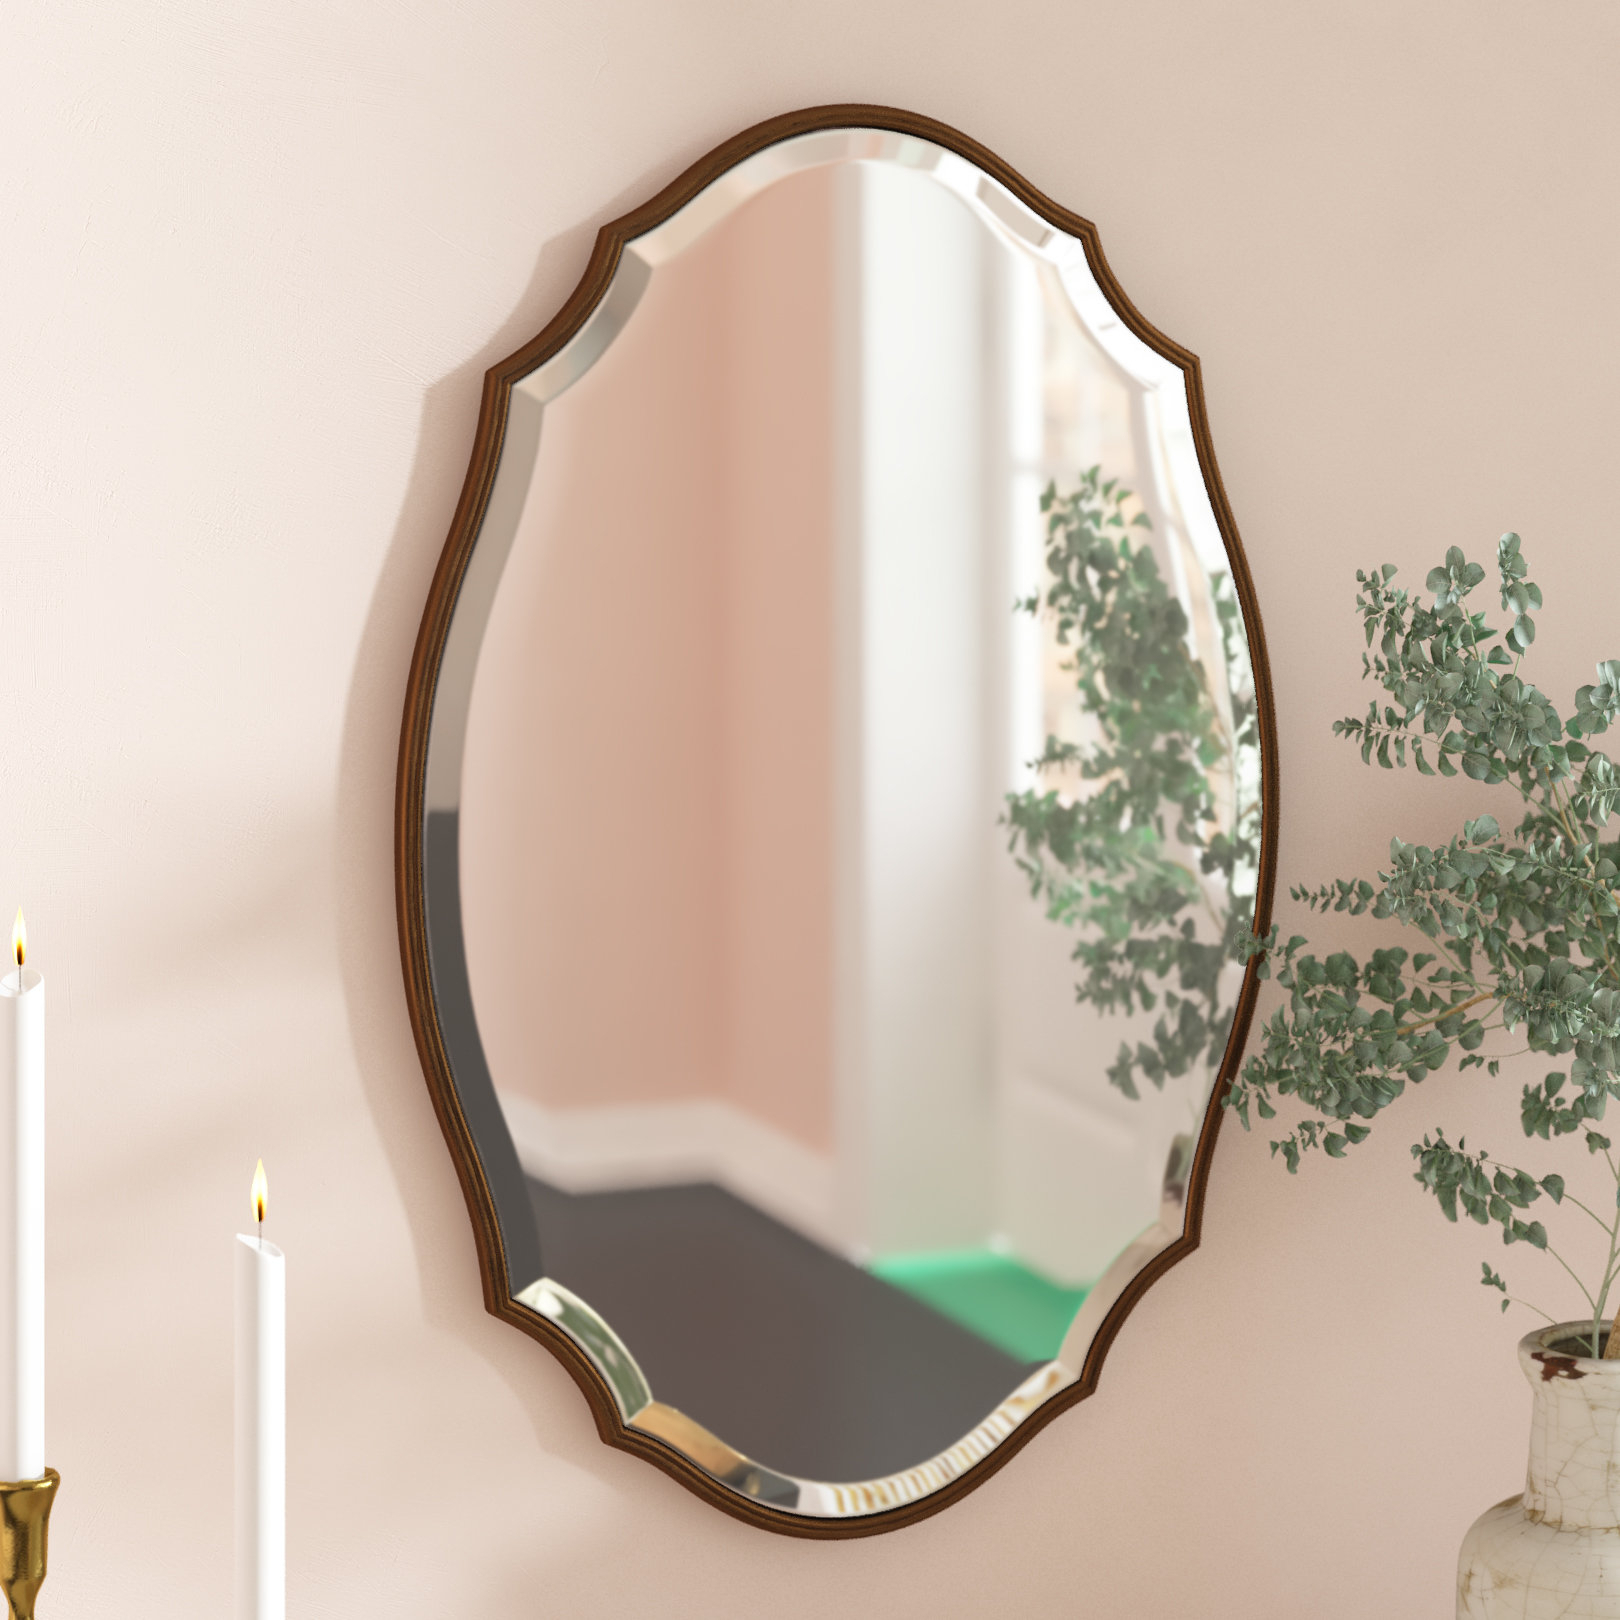 Modern & Contemporary Beveled Accent Mirror Regarding Menachem Modern & Contemporary Accent Mirrors (Image 19 of 30)